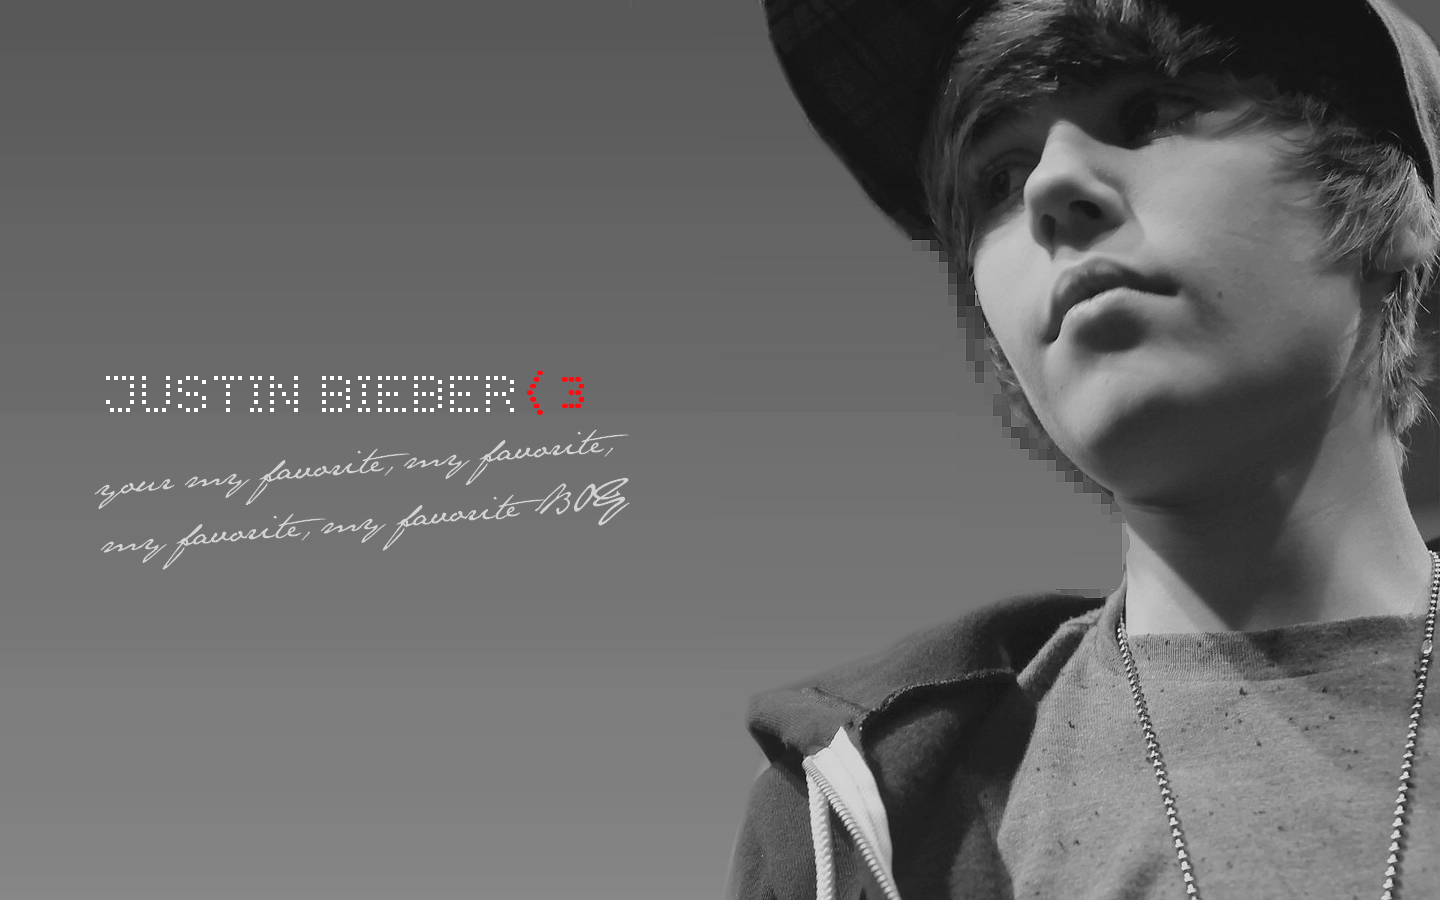 justin bieber wallpapers highlight wallpapers